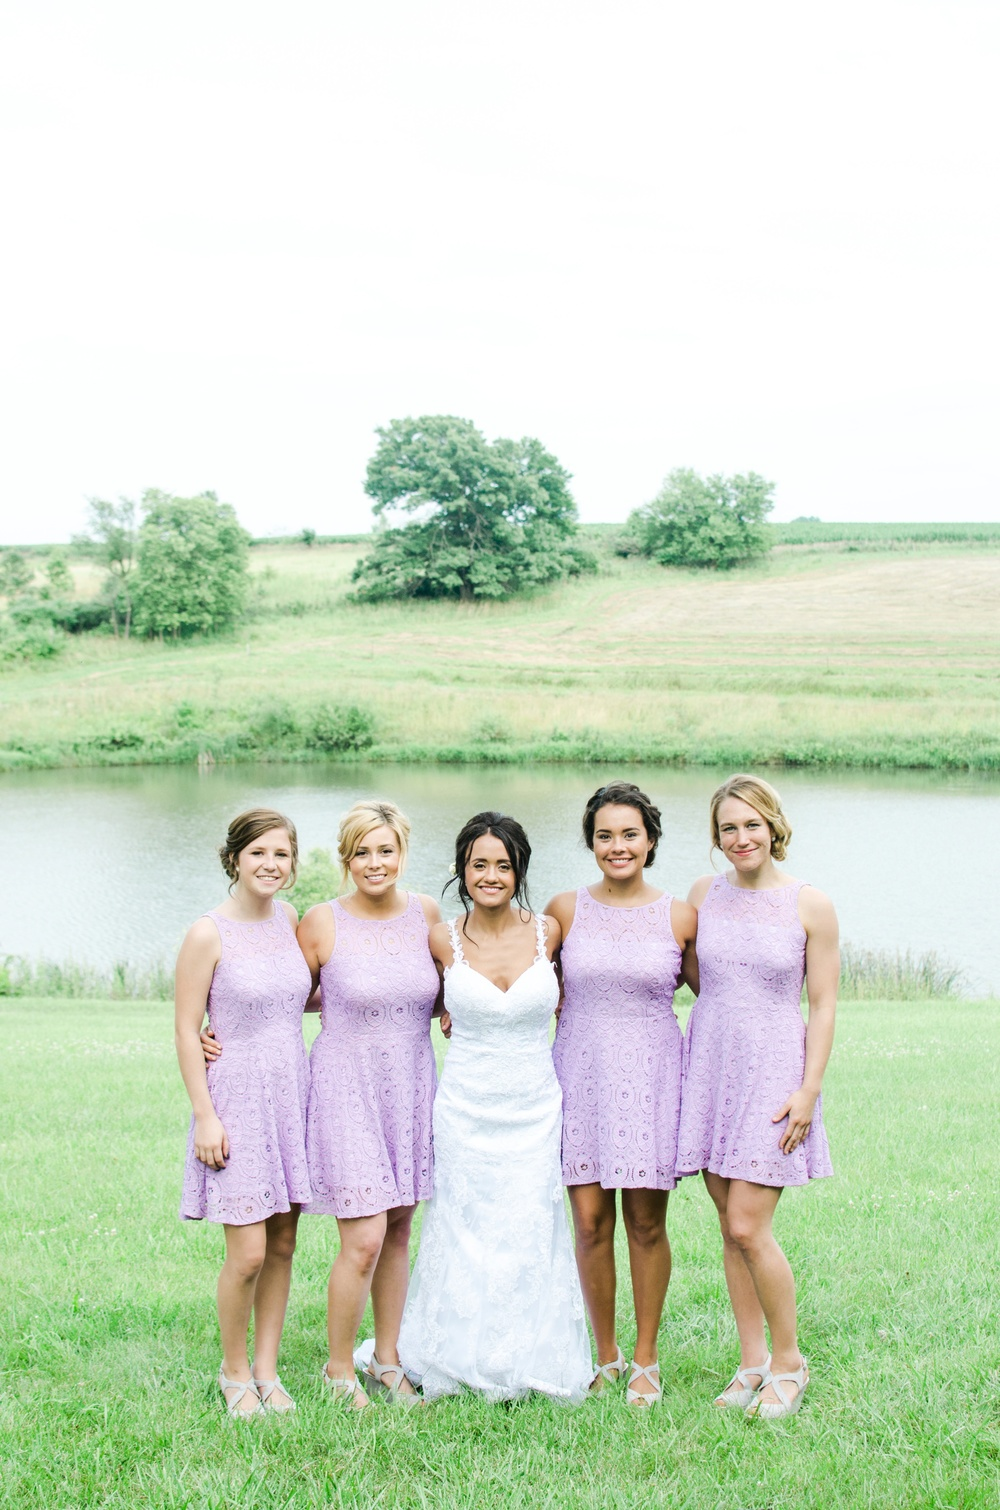 Barnes' Place Rustic Outdoor Wedding | Ali Leigh Photo Minneapolis Wedding Photographer_0143.jpg